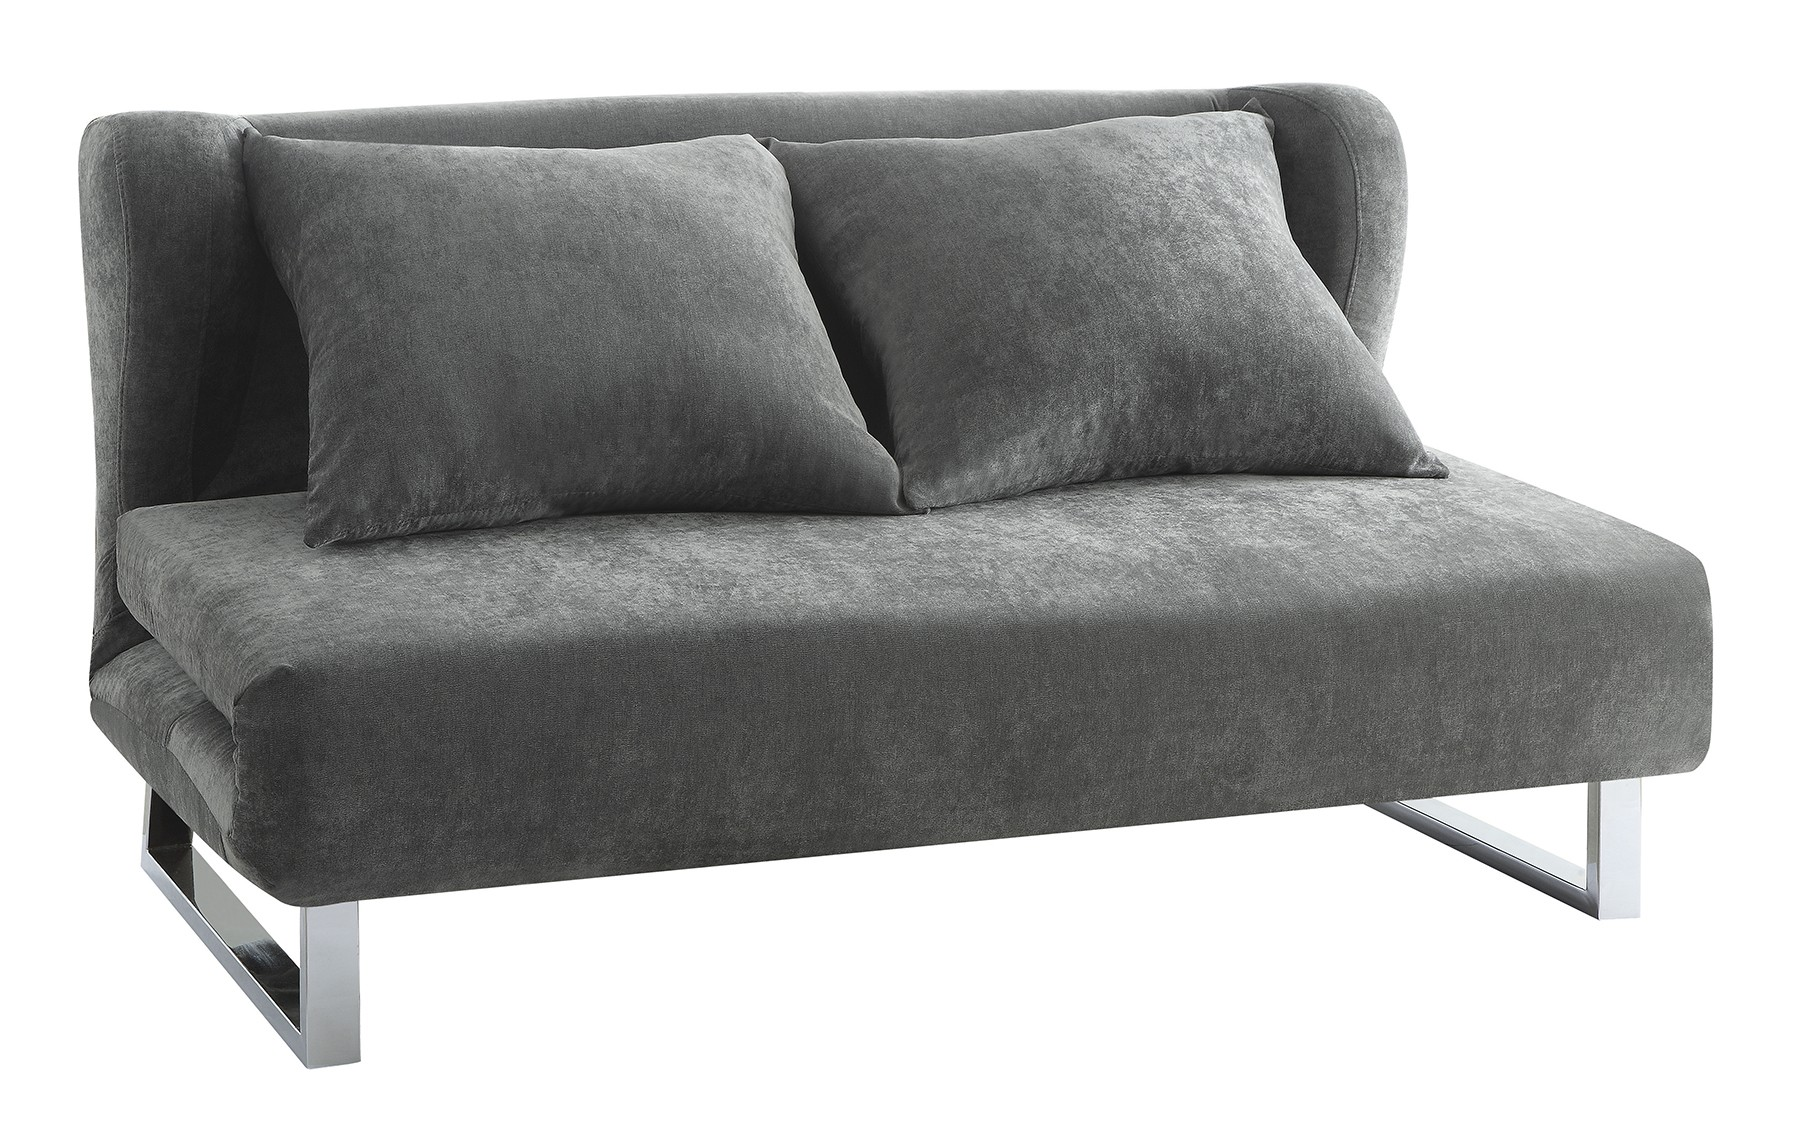 CONTEMPORARY GREY SOFA BED Converts from Sofa to Chaise Lounge Sofa ...